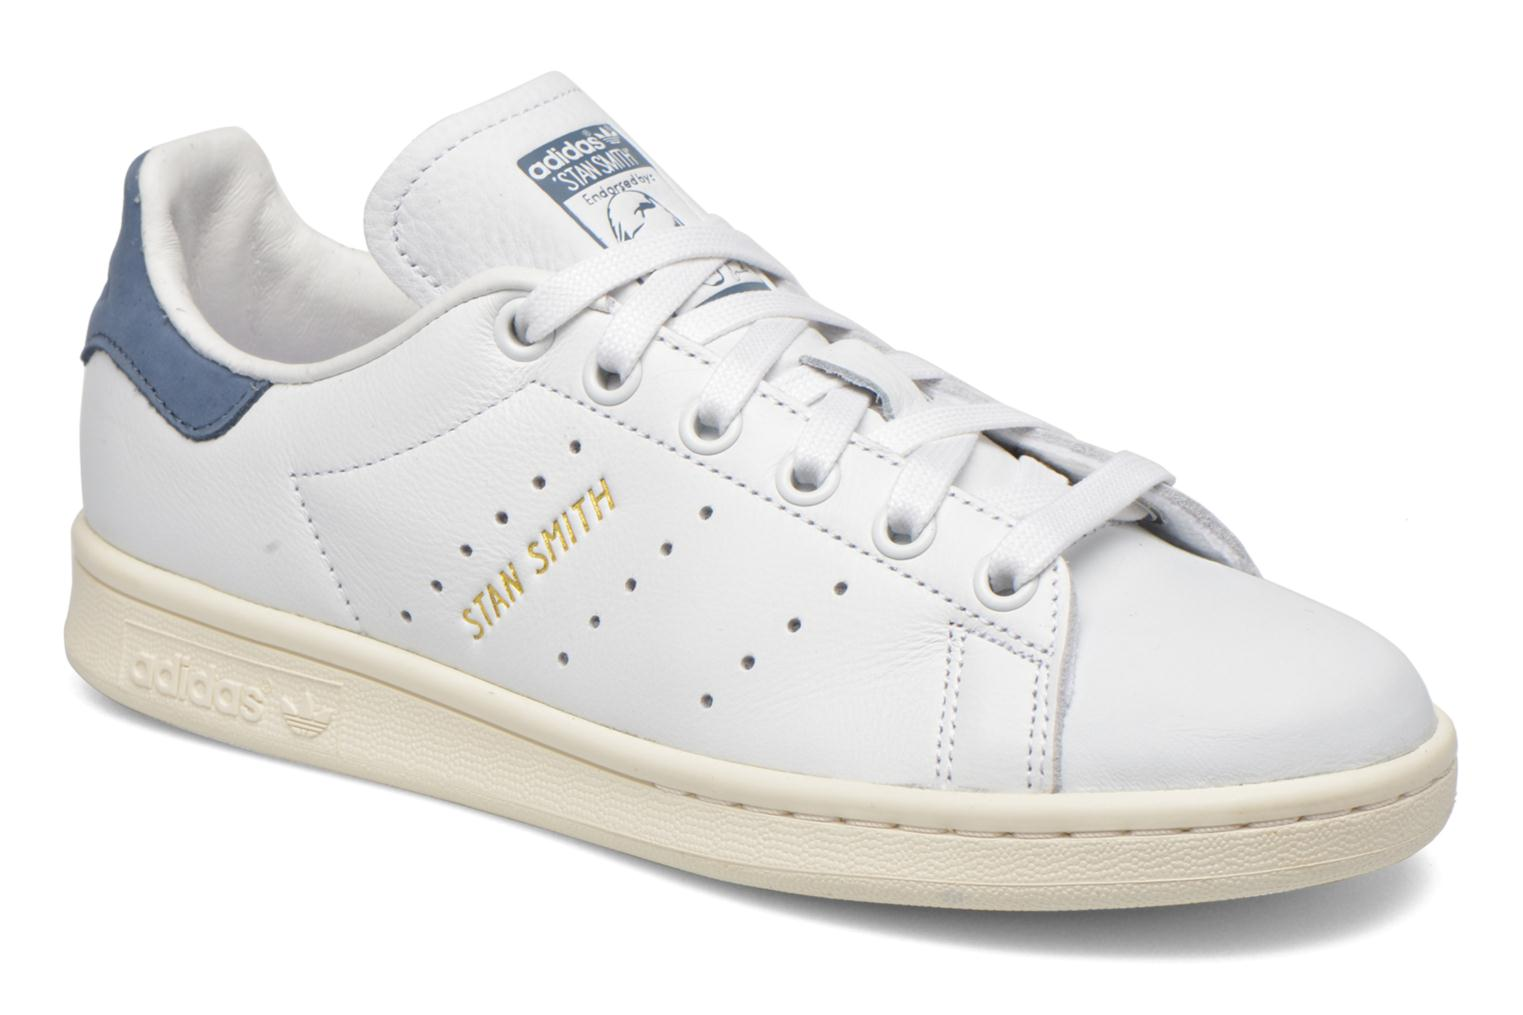 Stan Smith W Ftwbla/Ftwbla/Enctec